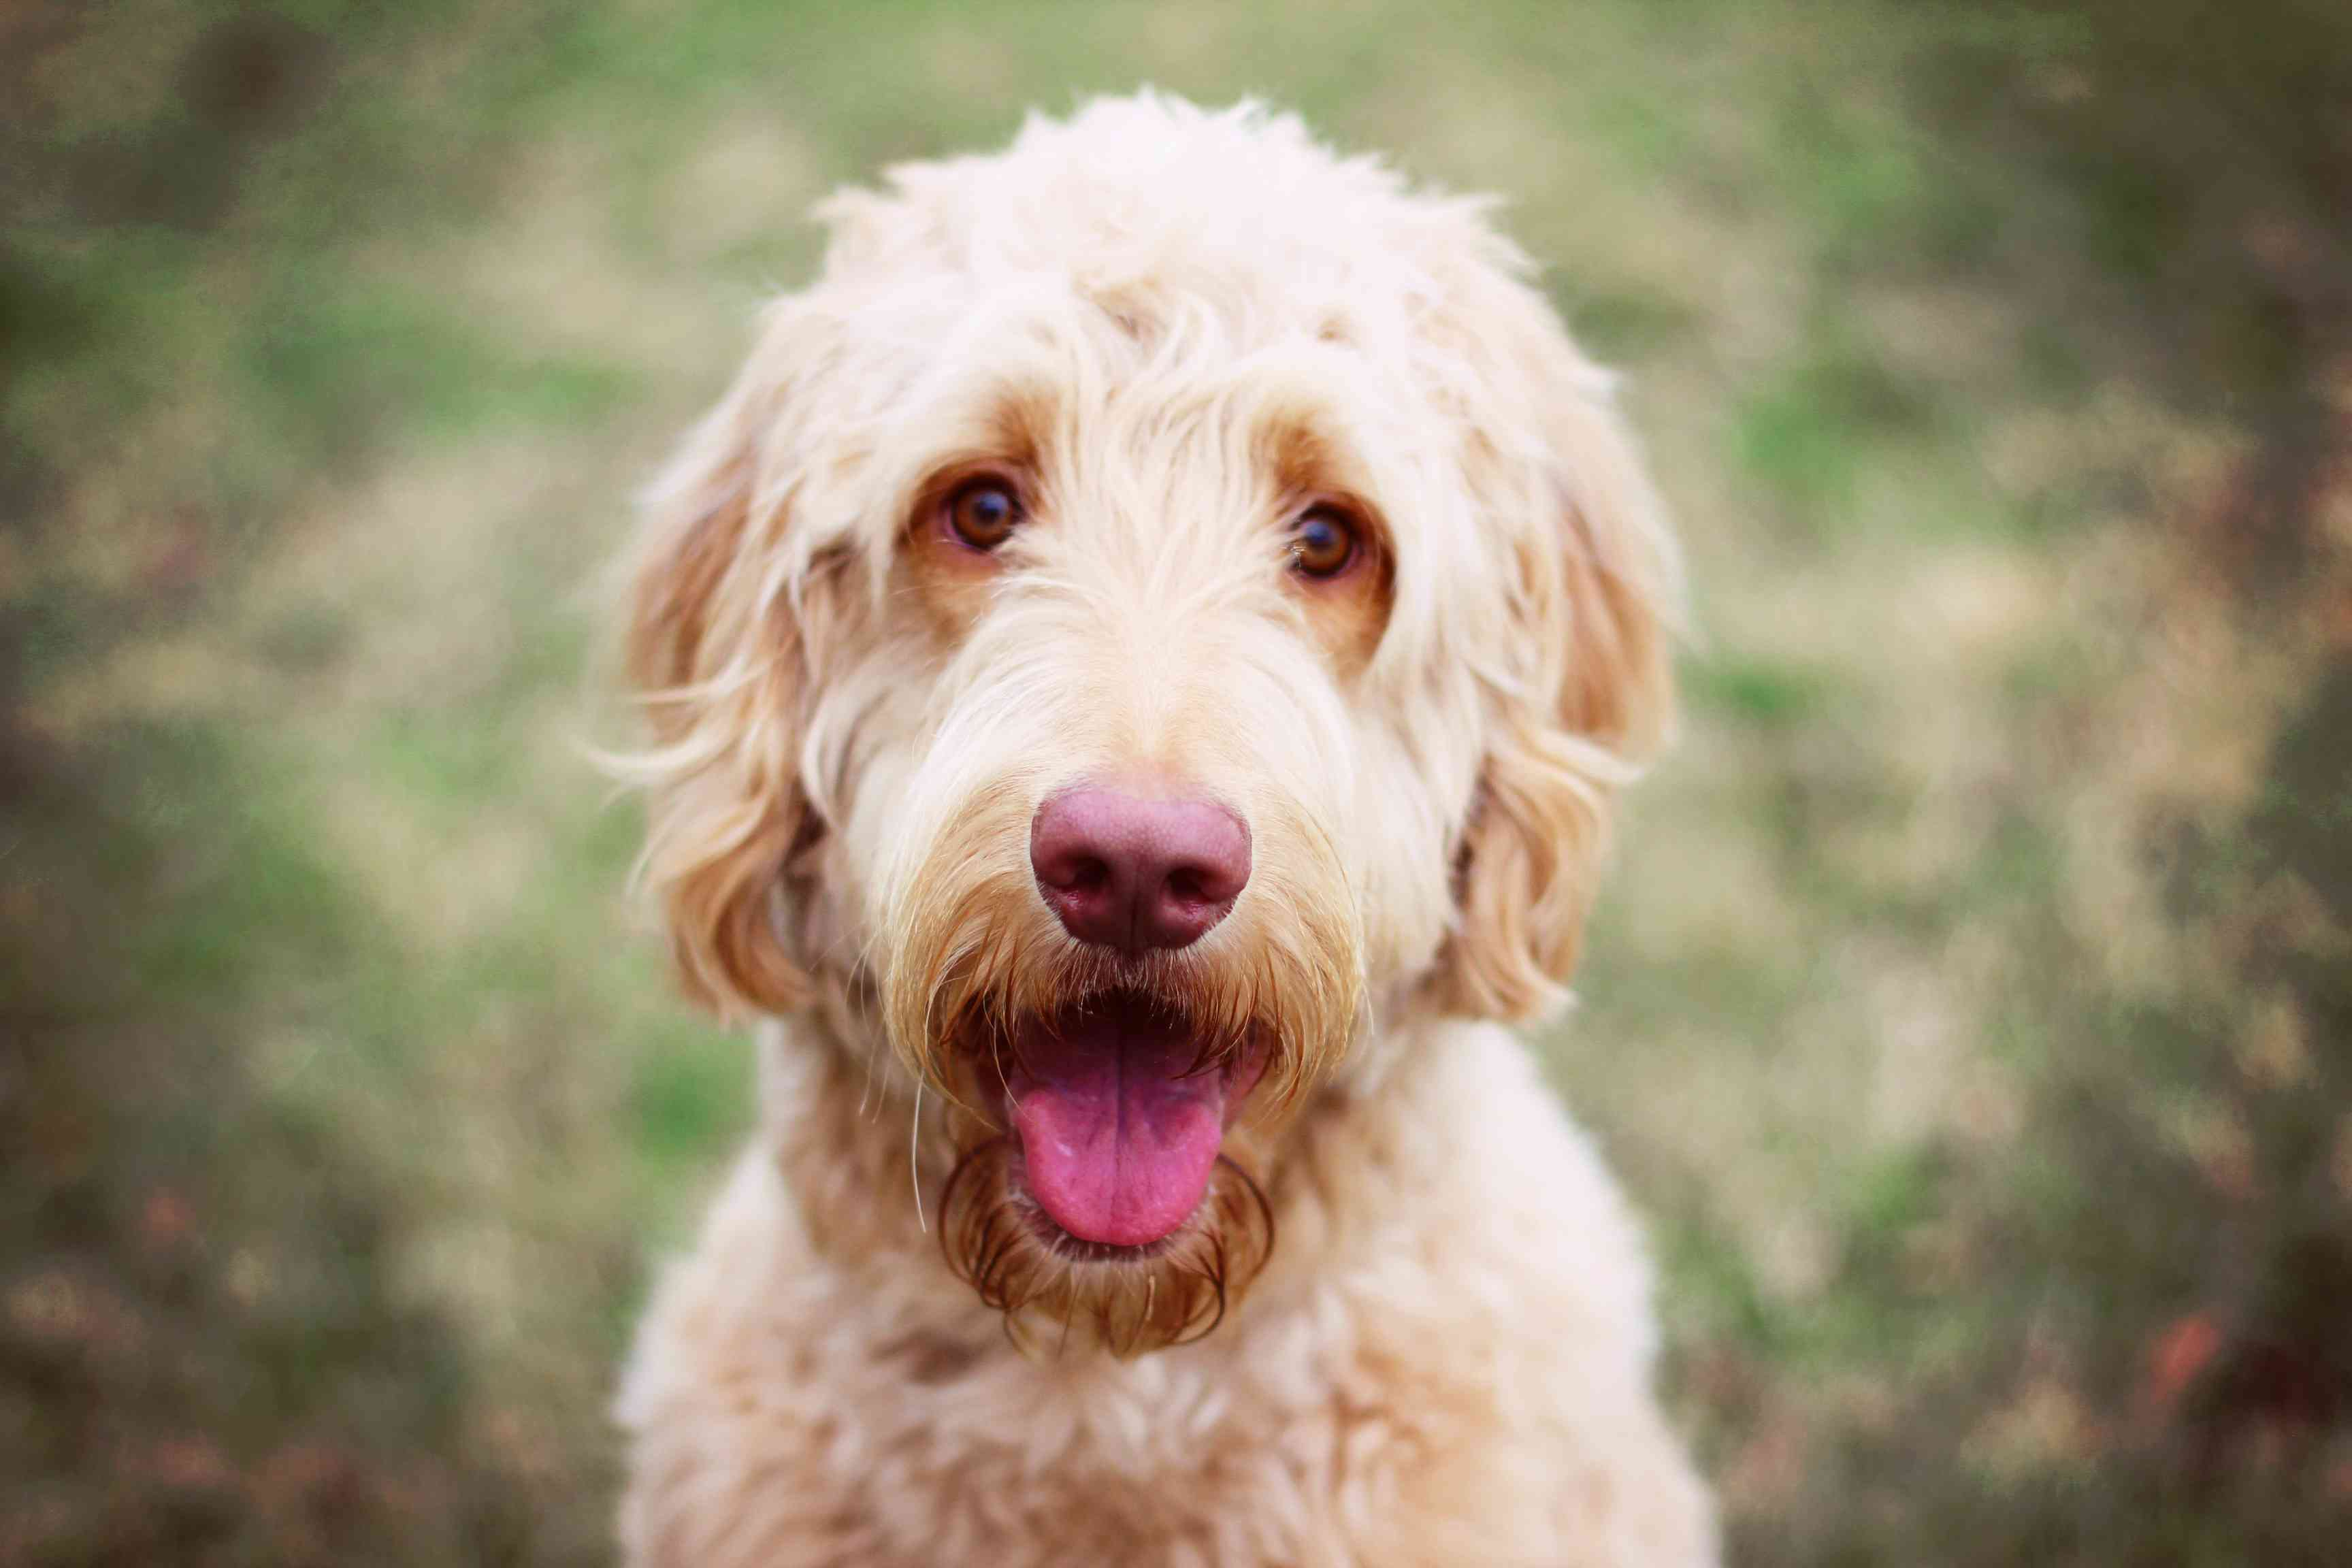 A Goldendoodle outdoors